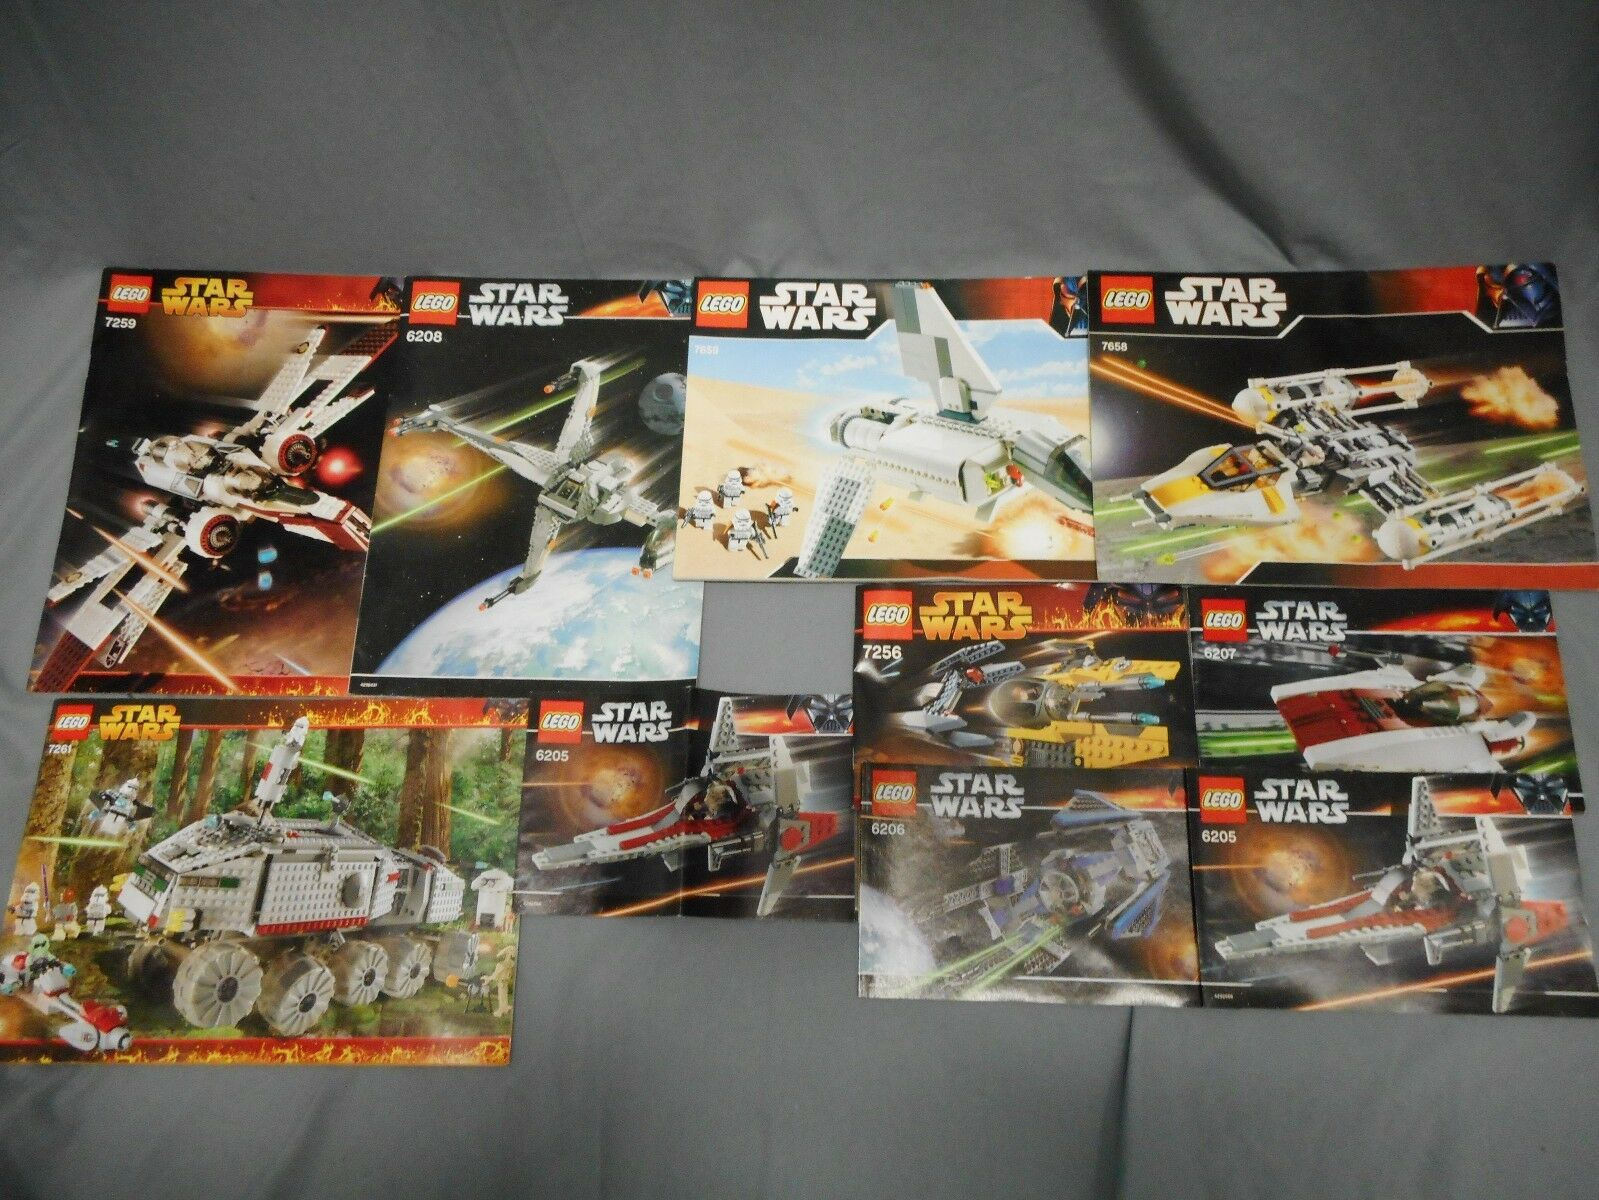 LEGO STAR WARS LOT OF 10 INSTRUCTION MANUALS ONLY 7259 6208 7261 7658 AND MORE